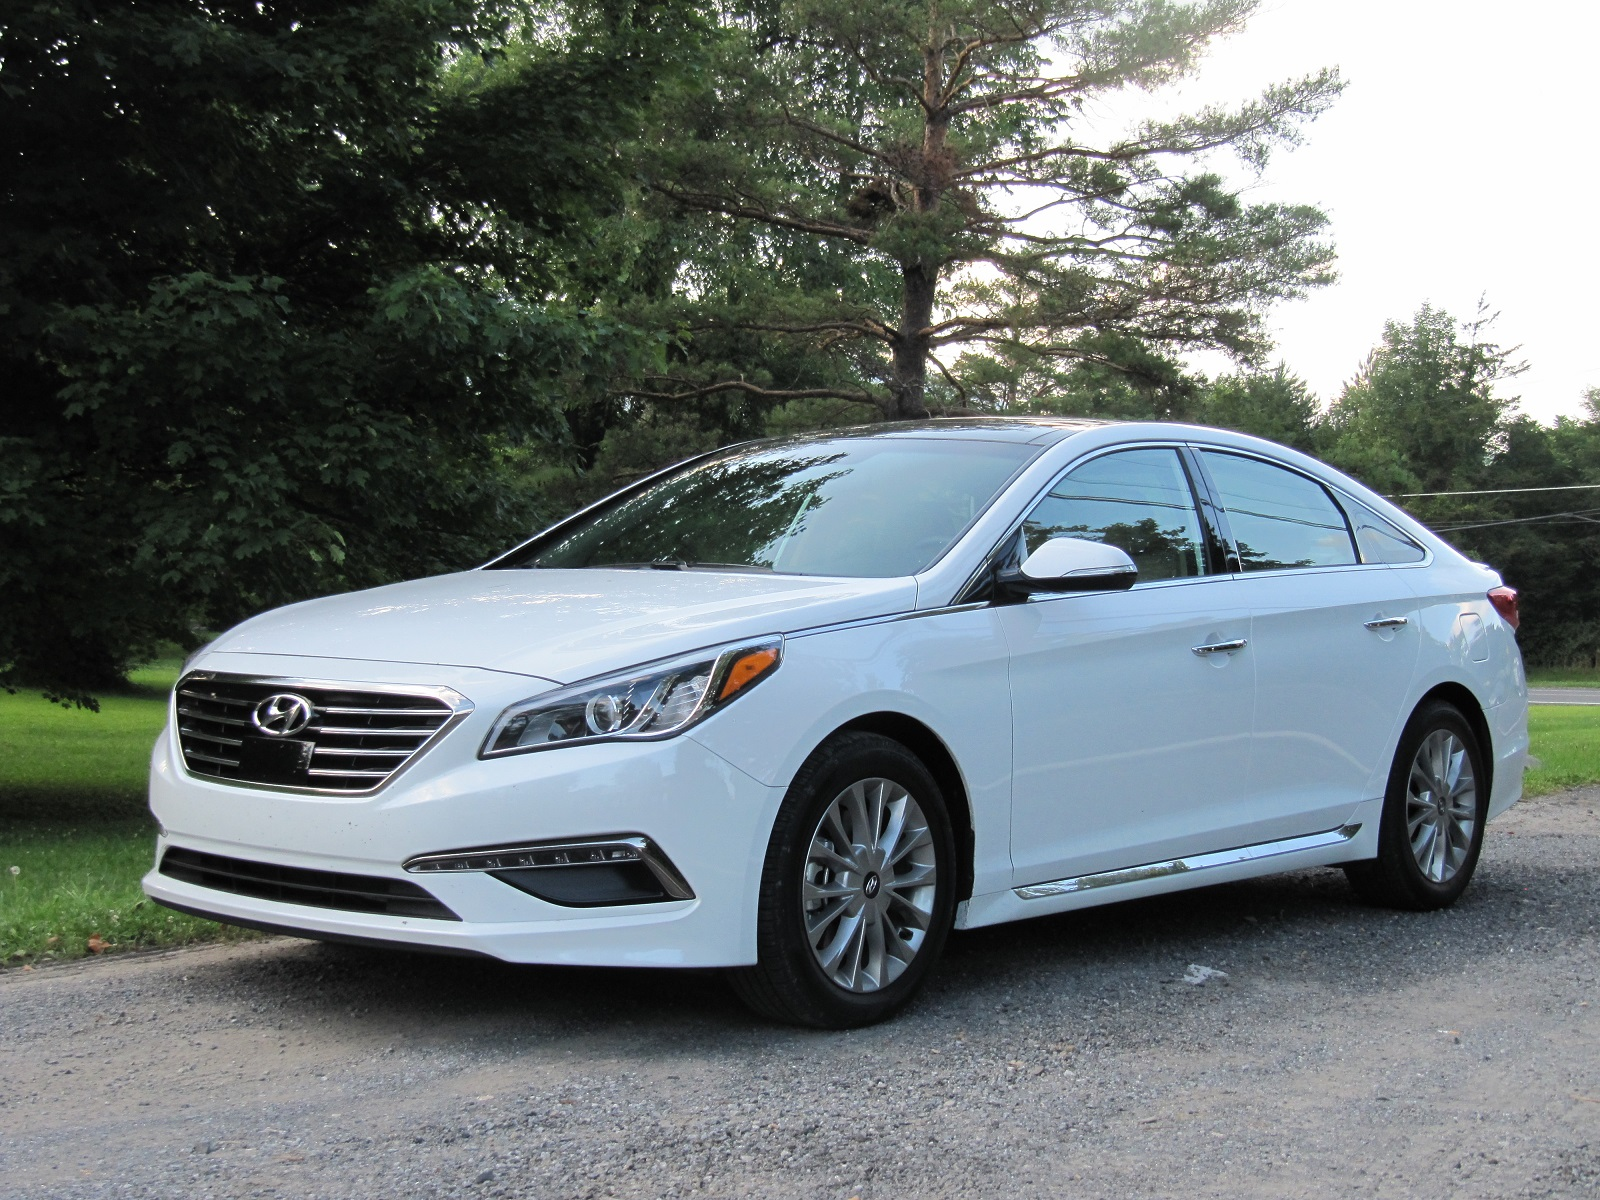 2015 Hyundai Sonata Gas Mileage Review Of New Mid Size Sedan